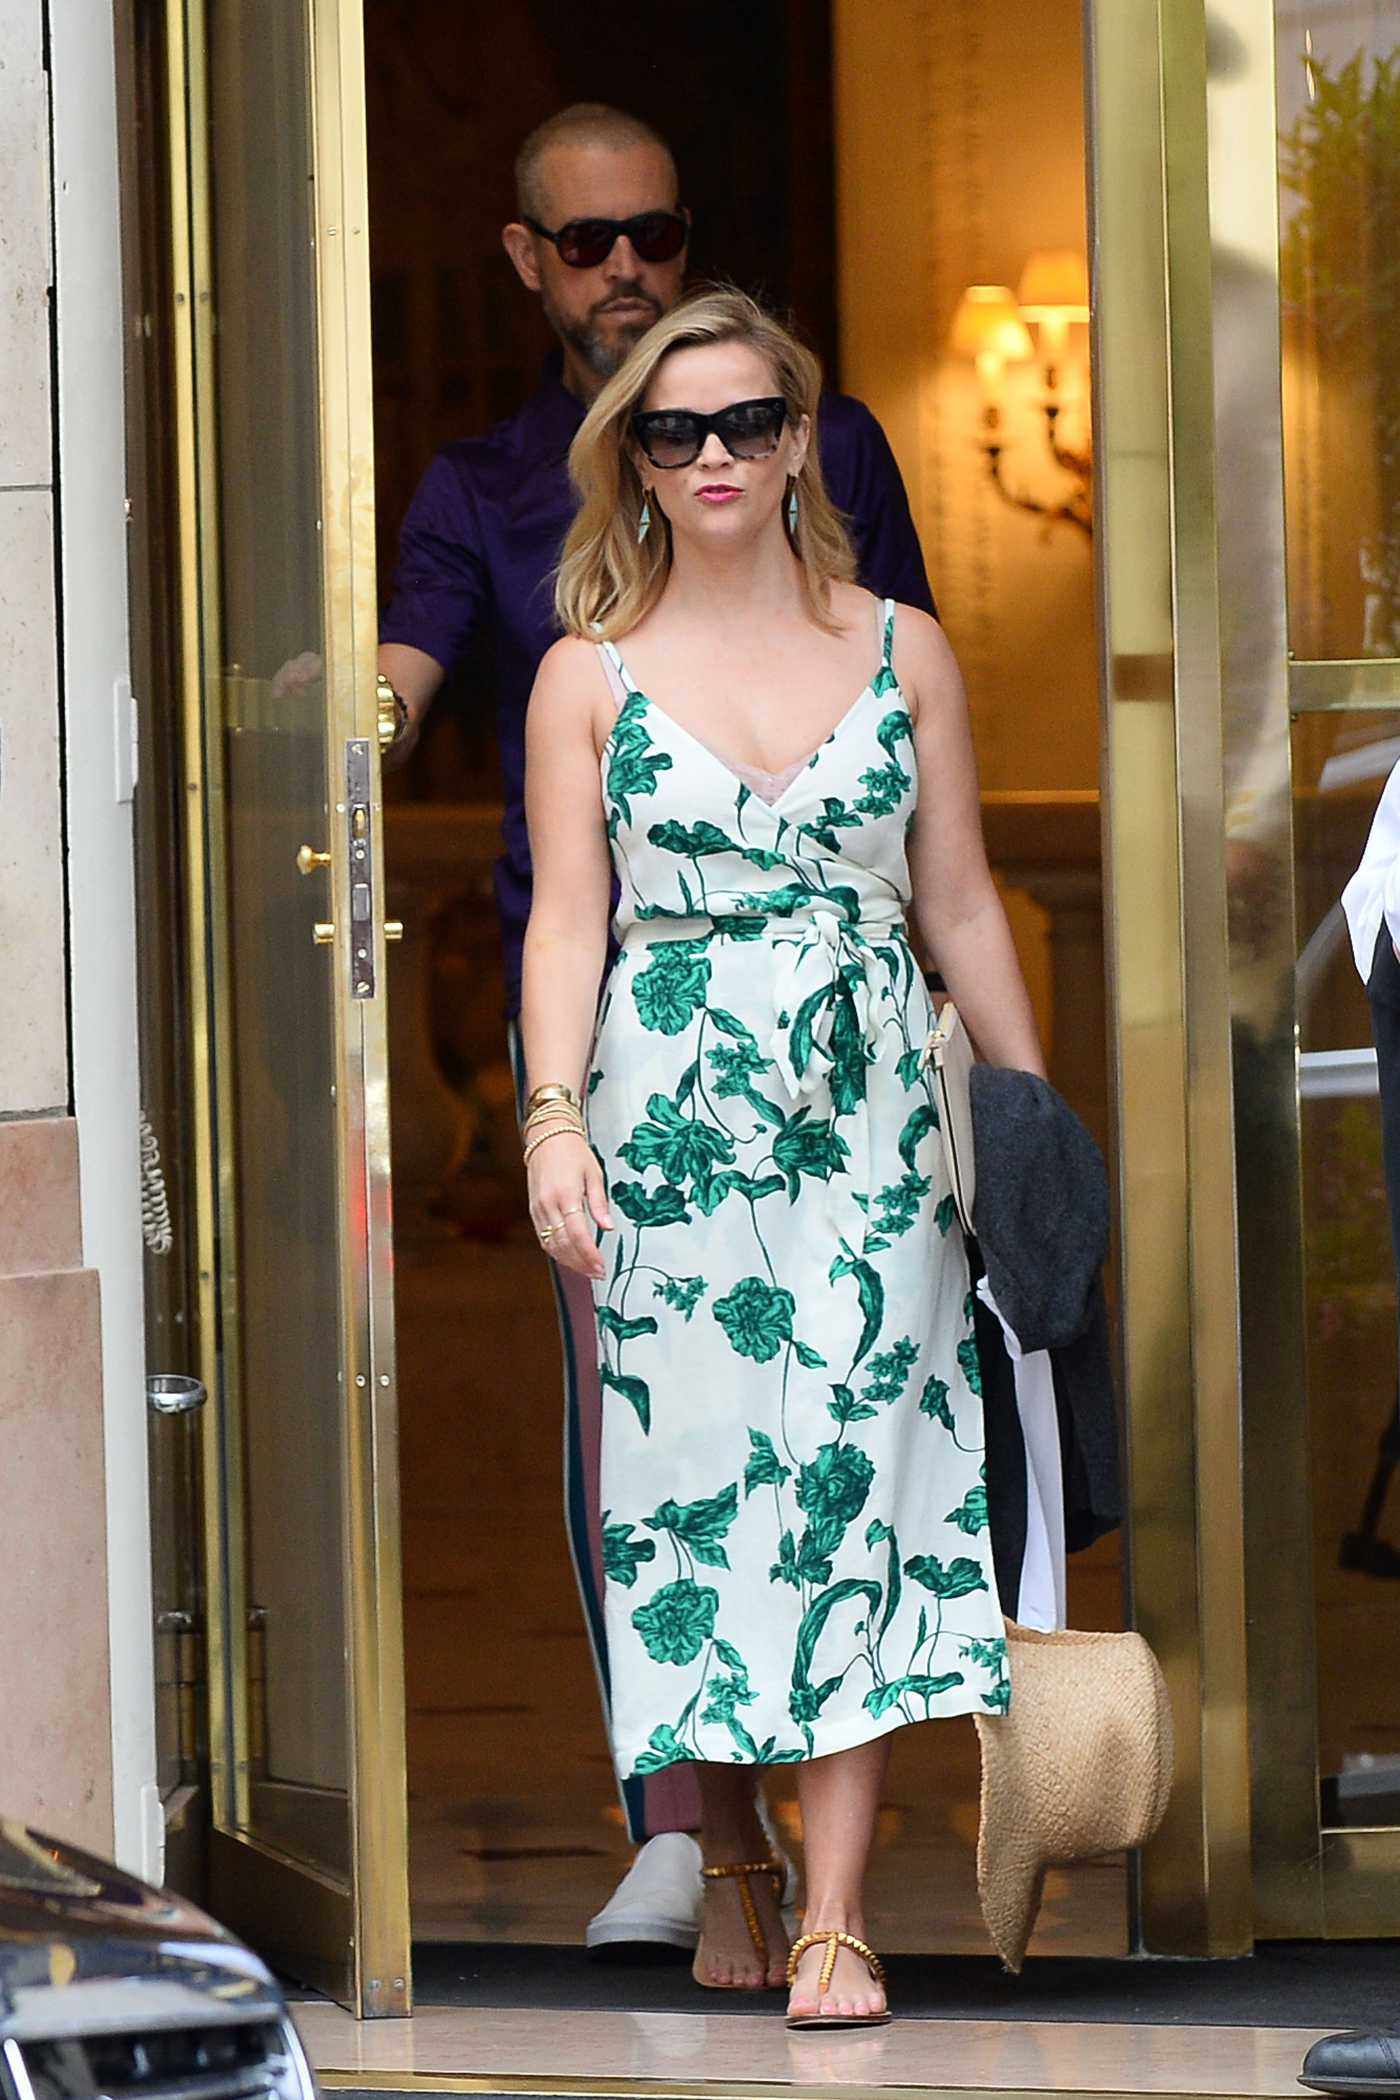 Reese Witherspoon in a White Floral Dress Leaves Bristol Hotel Out with Her Husband Jim Toth in Paris 06/30/2019